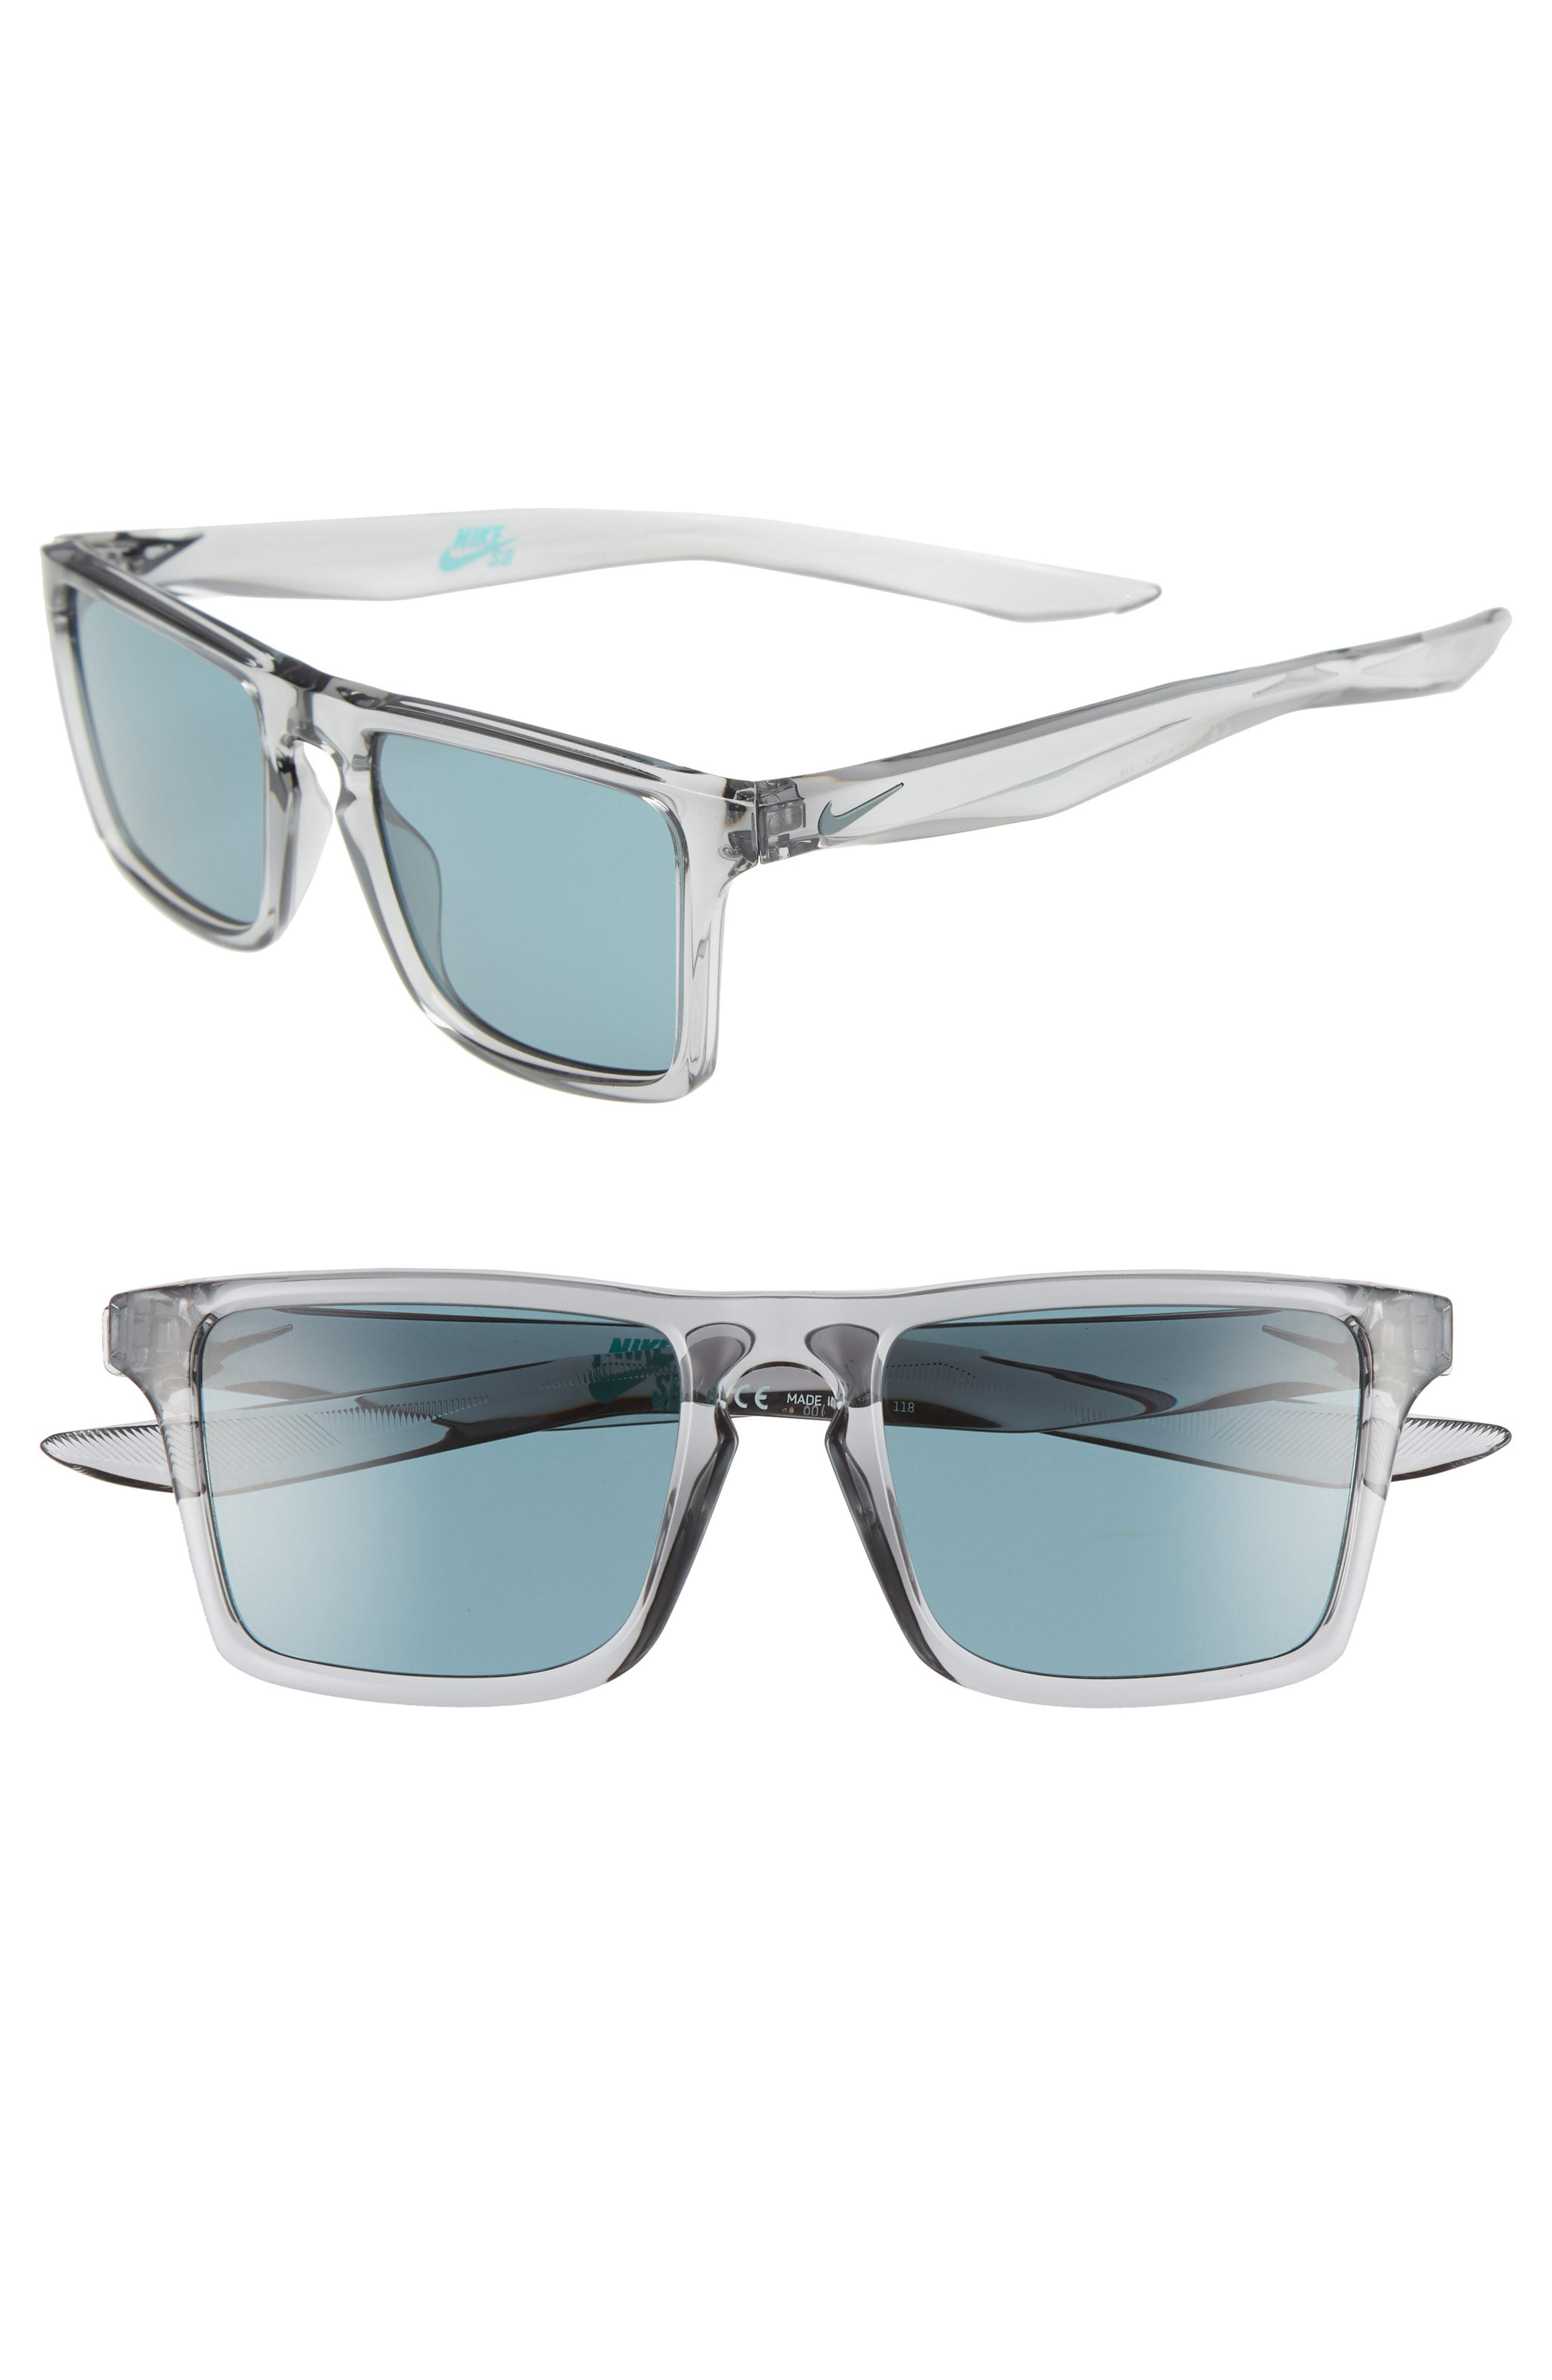 45597bd0ea8 Lyst - Nike Verge 52mm Sunglasses - Wolf Grey  Teal in Gray for Men